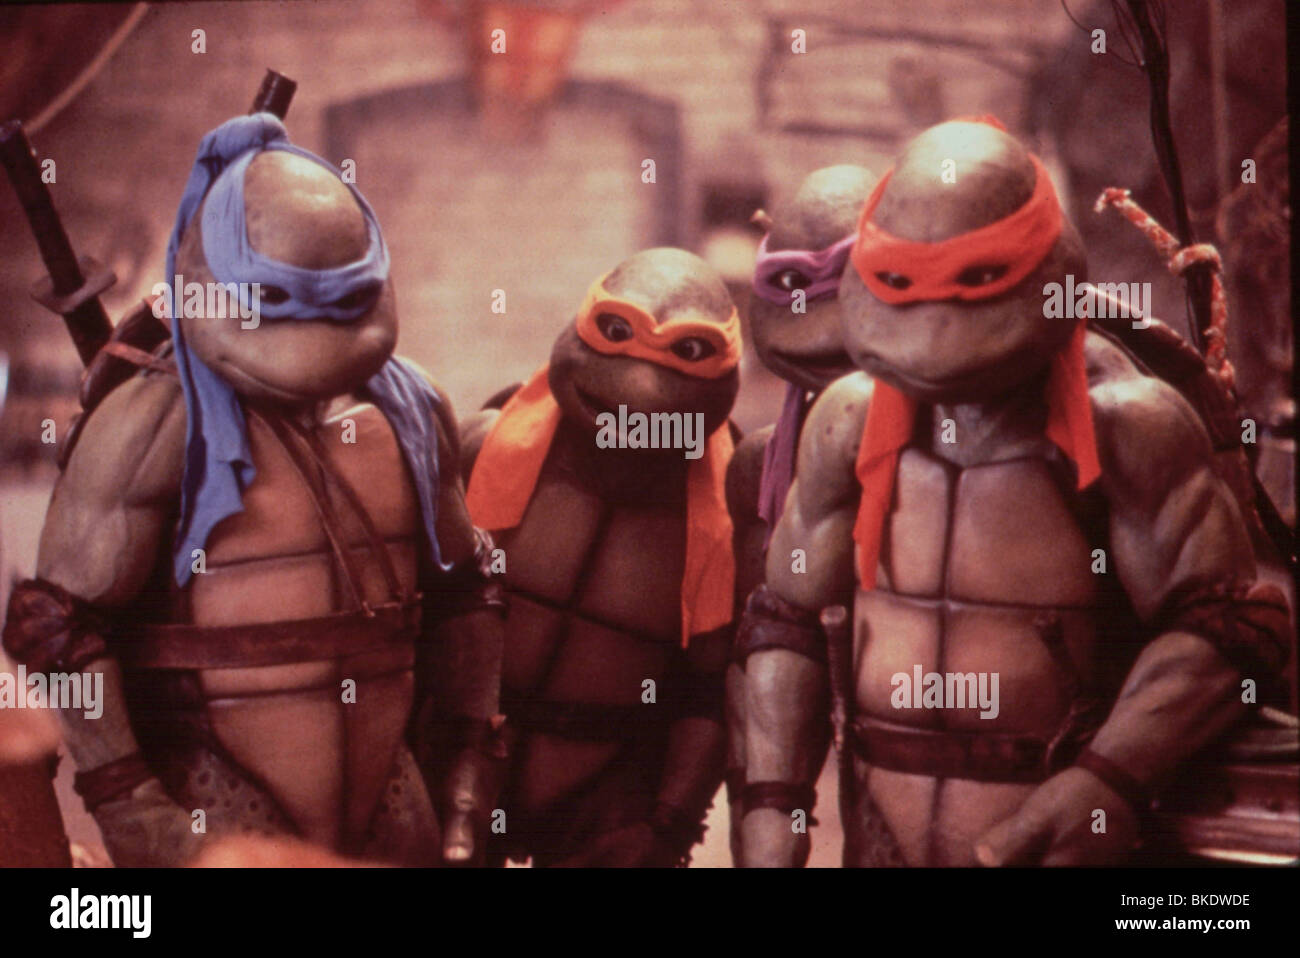 Teenage Mutant Ninja Turtles 2 Stockfotos & Teenage Mutant Ninja ...